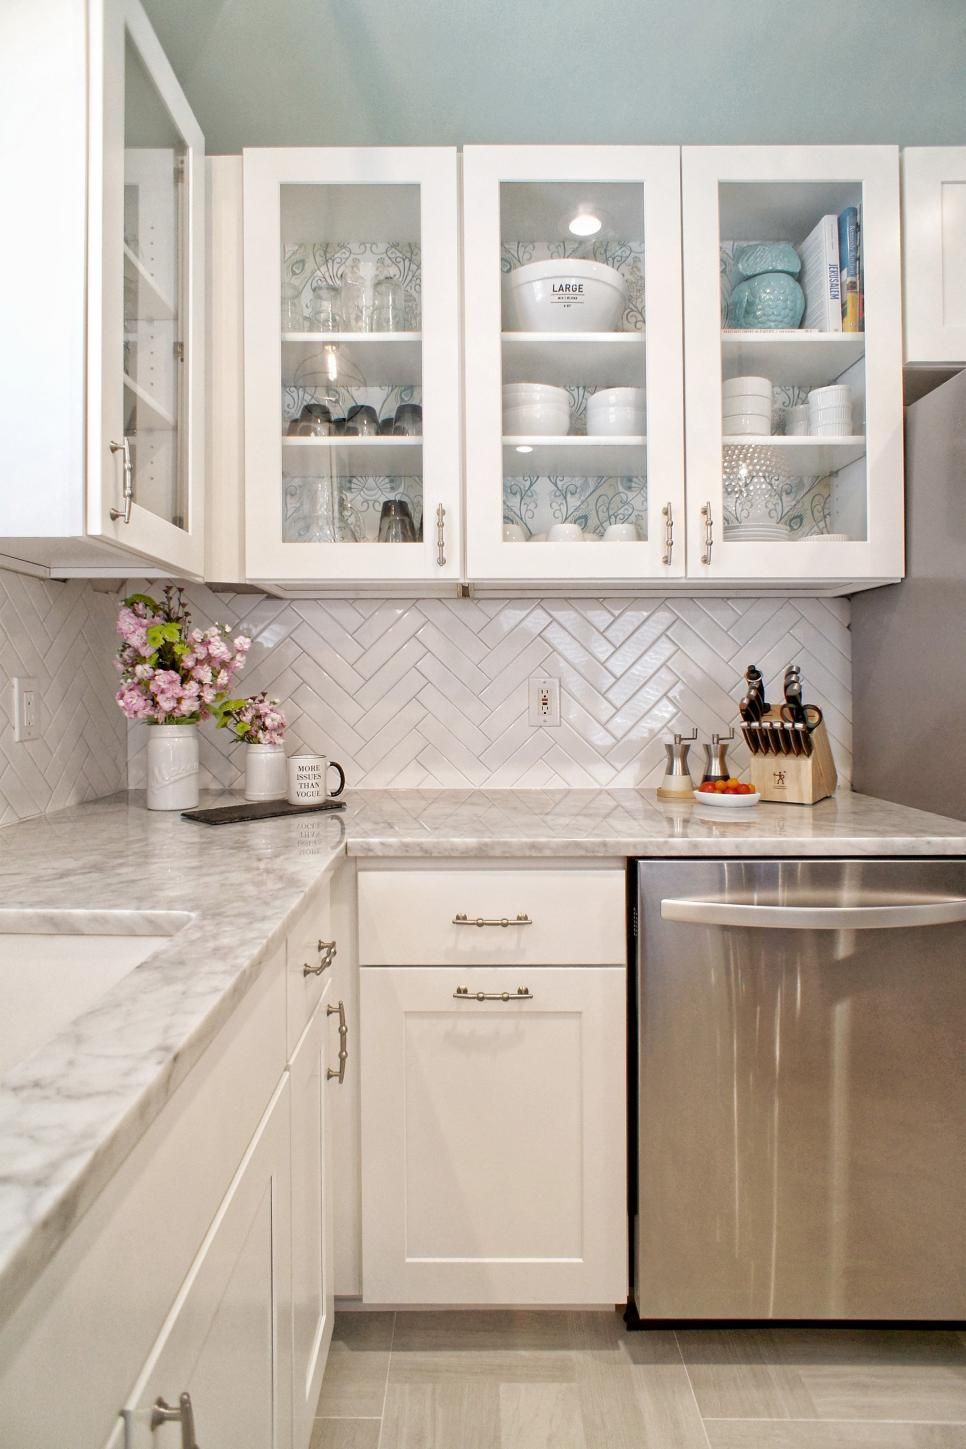 Our 25 most pinned photos of 2016 herringbone backsplash for Kitchen cabinet trends 2018 combined with large glass wall art